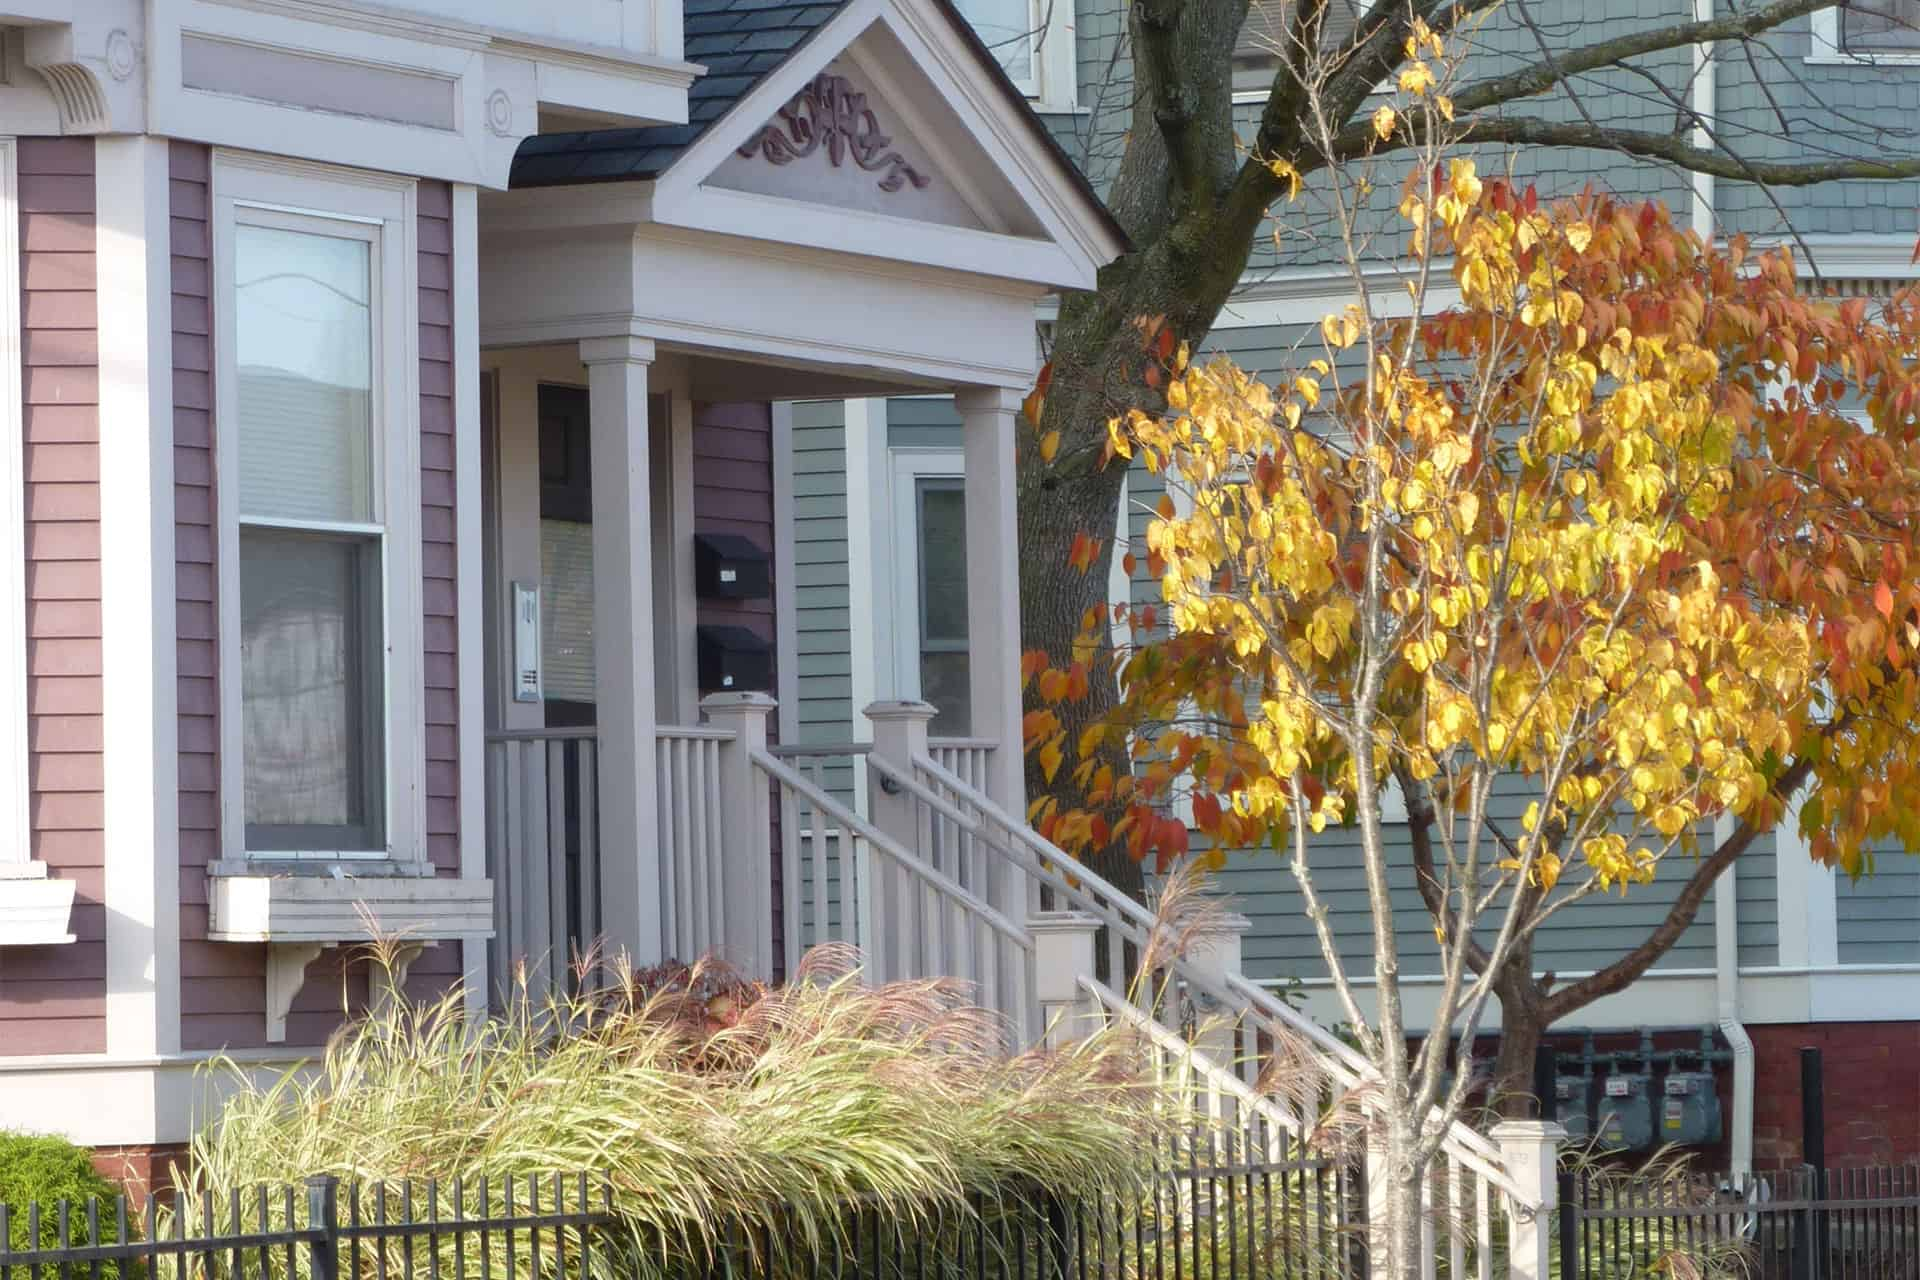 The time of year is the fall. Off to the right is a small tree with yellow leaves. To the left is a restored historic Victorian home showing the front porch and front windows.